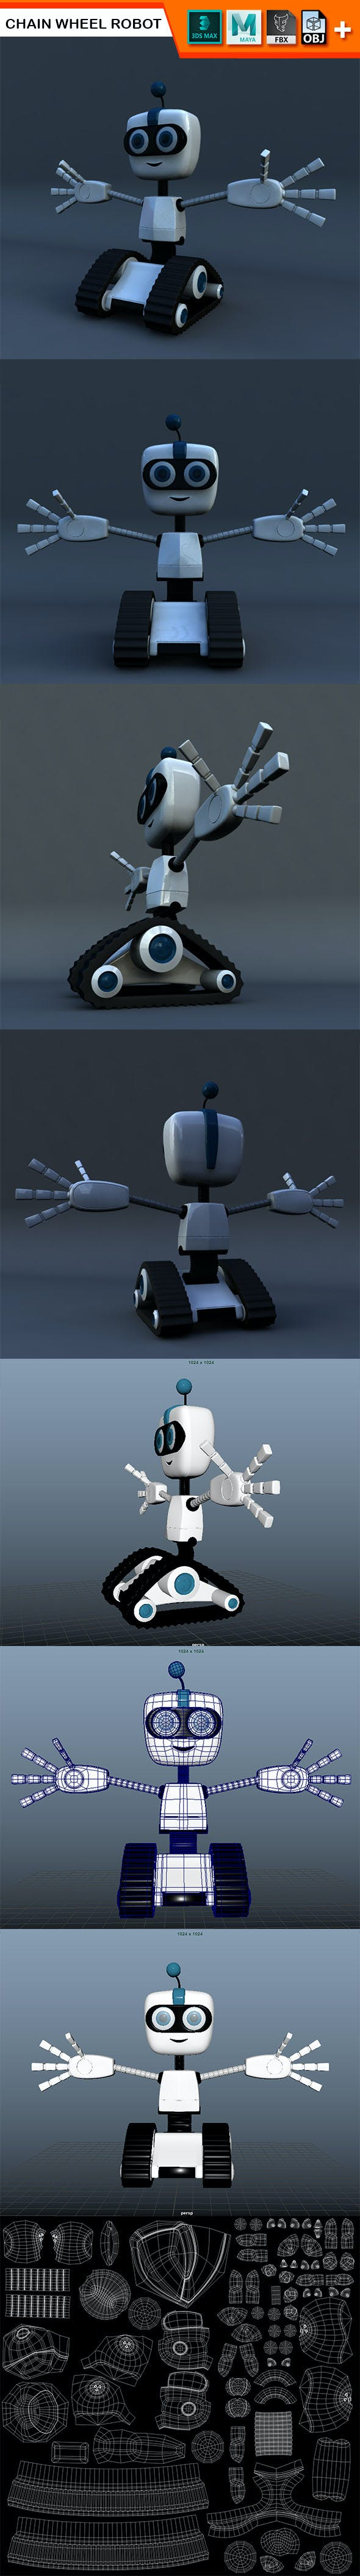 Chain Wheel Robot Model - 3DOcean Item for Sale